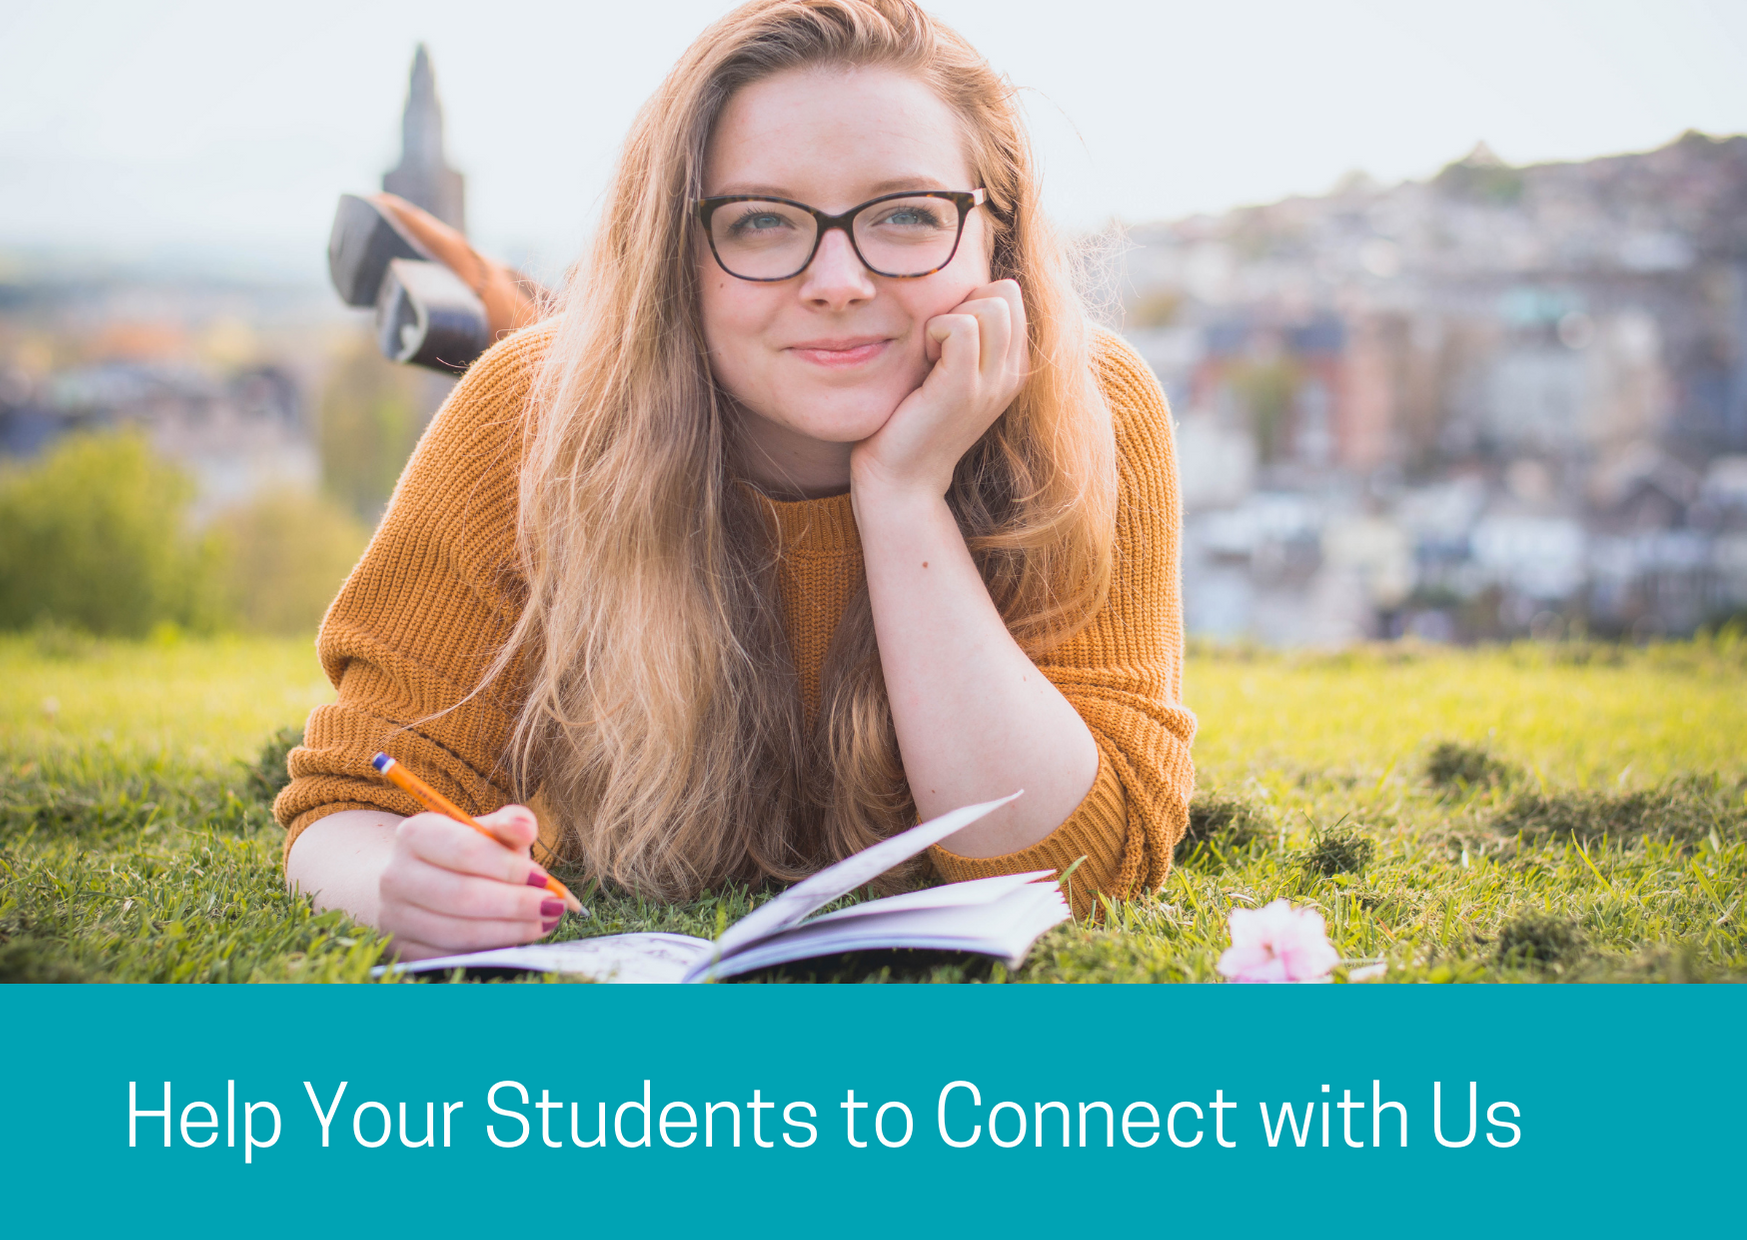 Help Your Students to Connect with Us